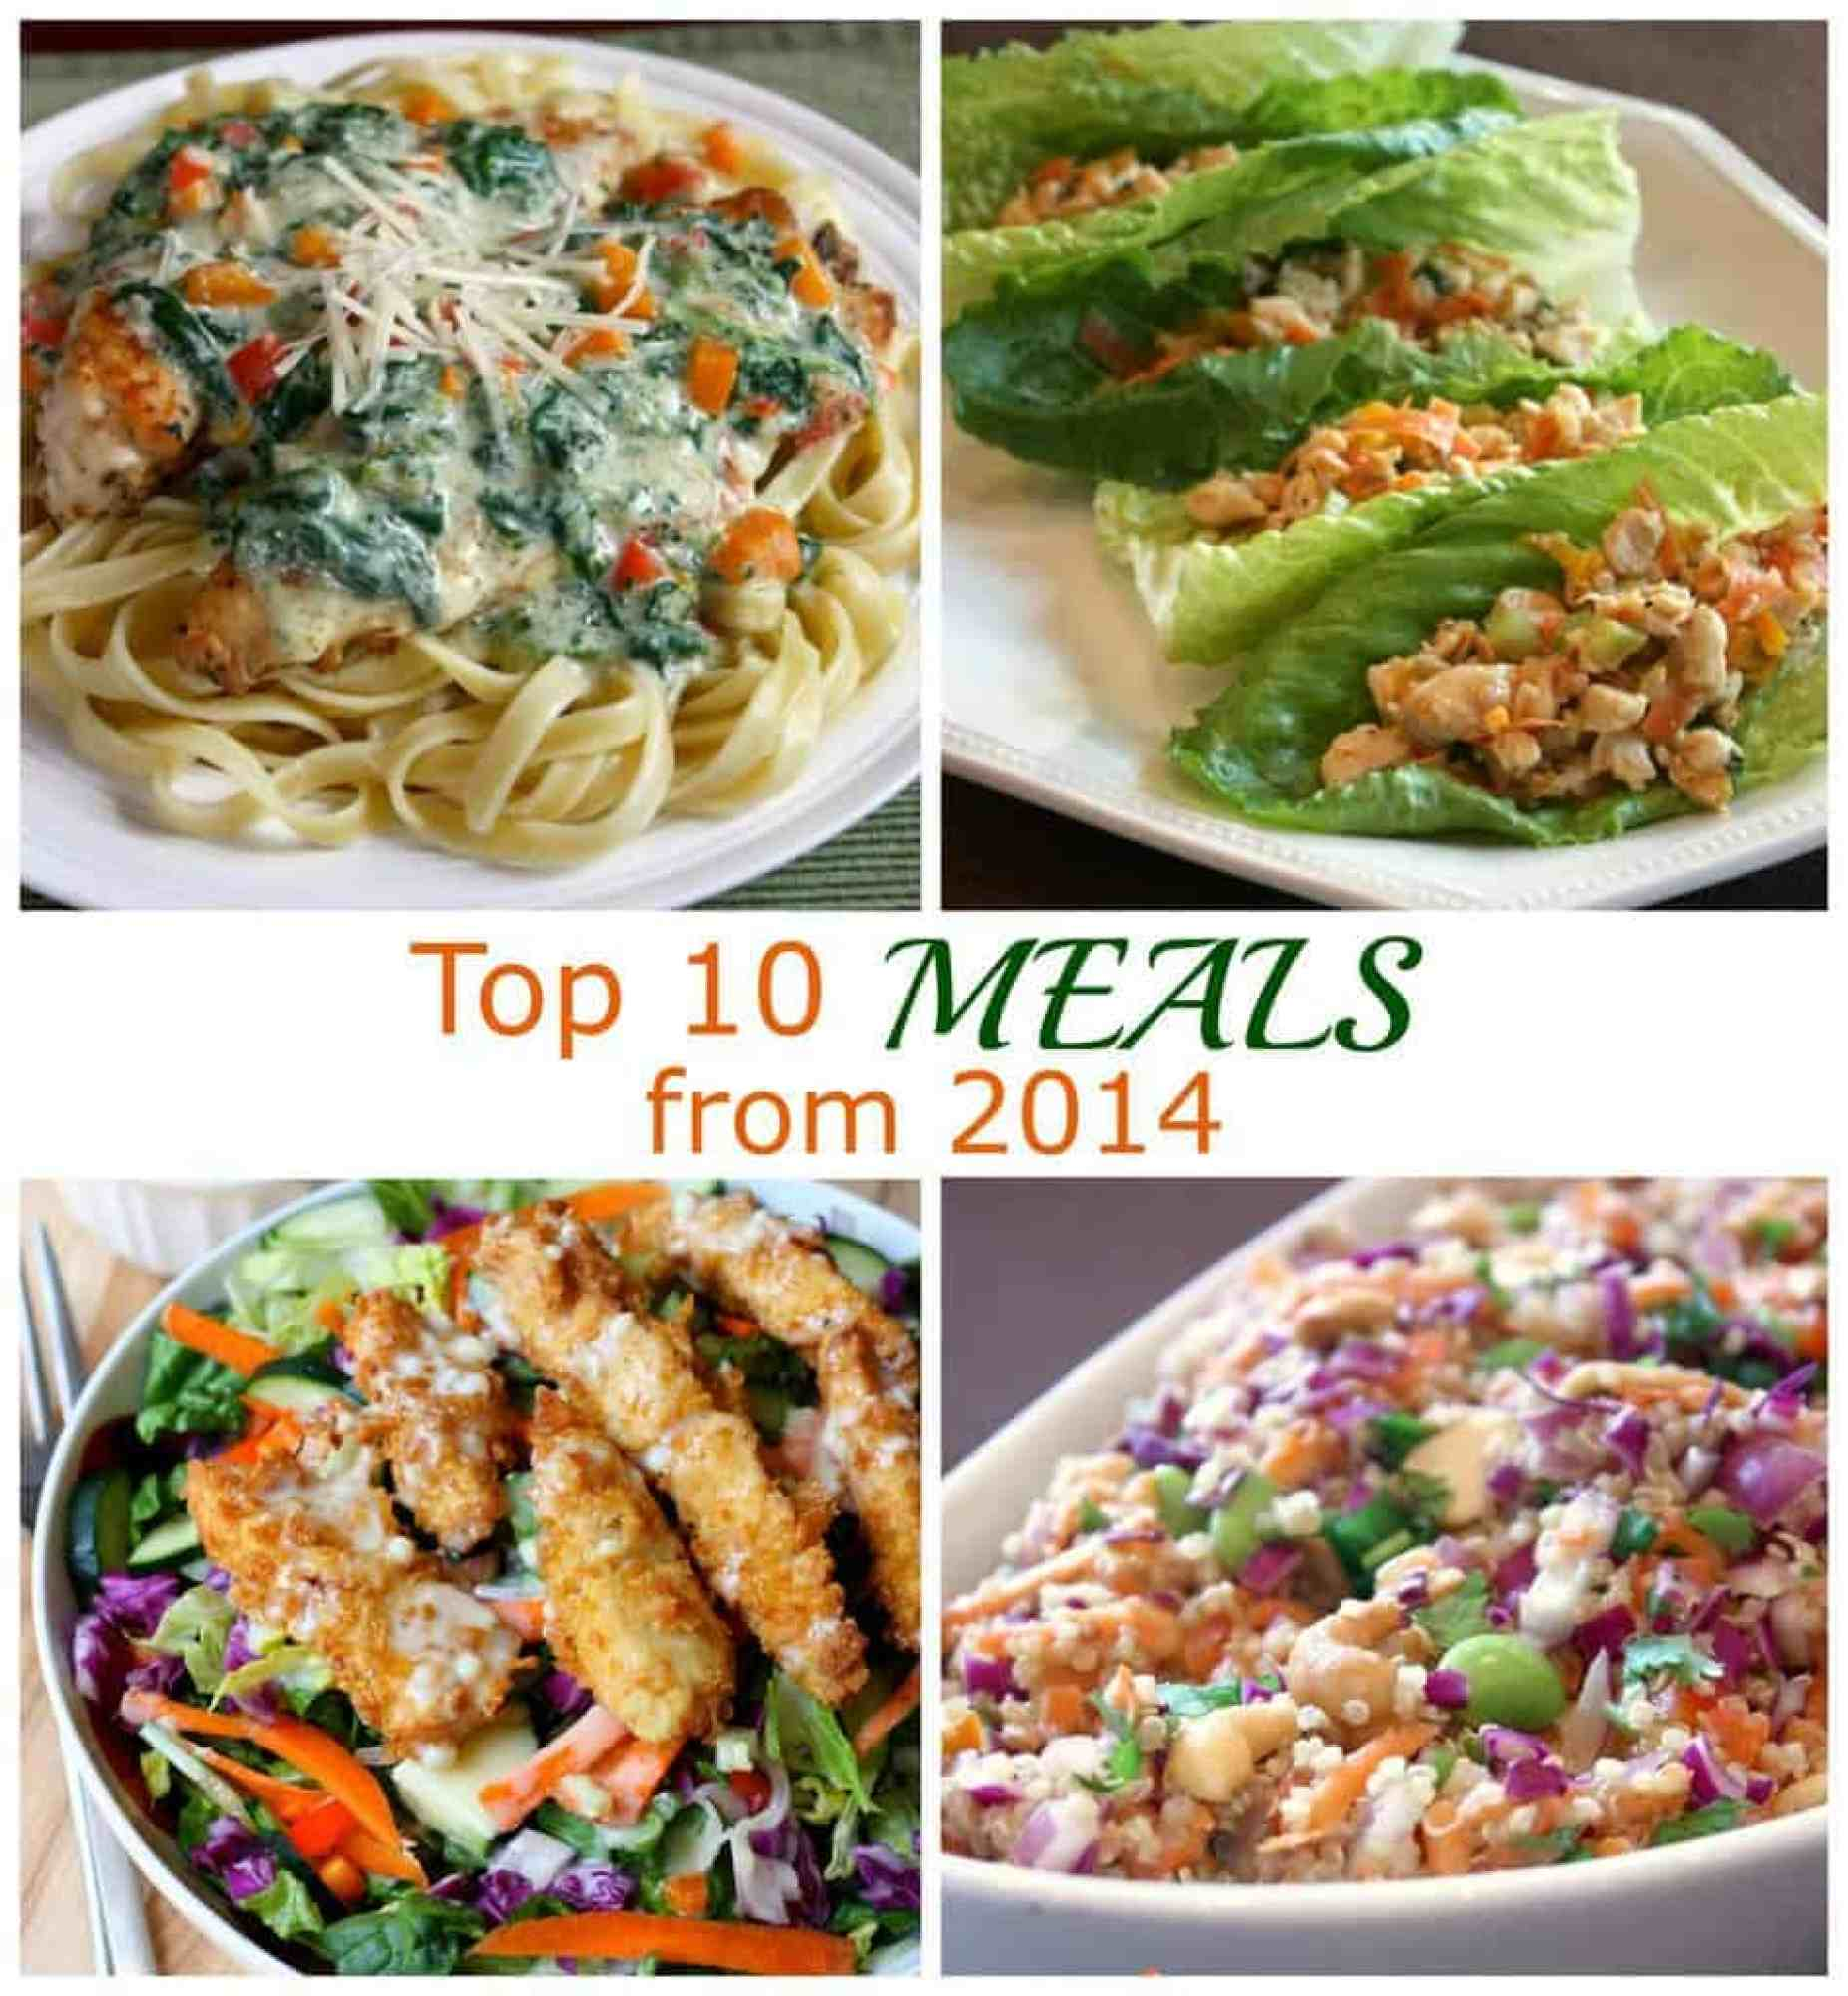 Top 10 Meals from 2014